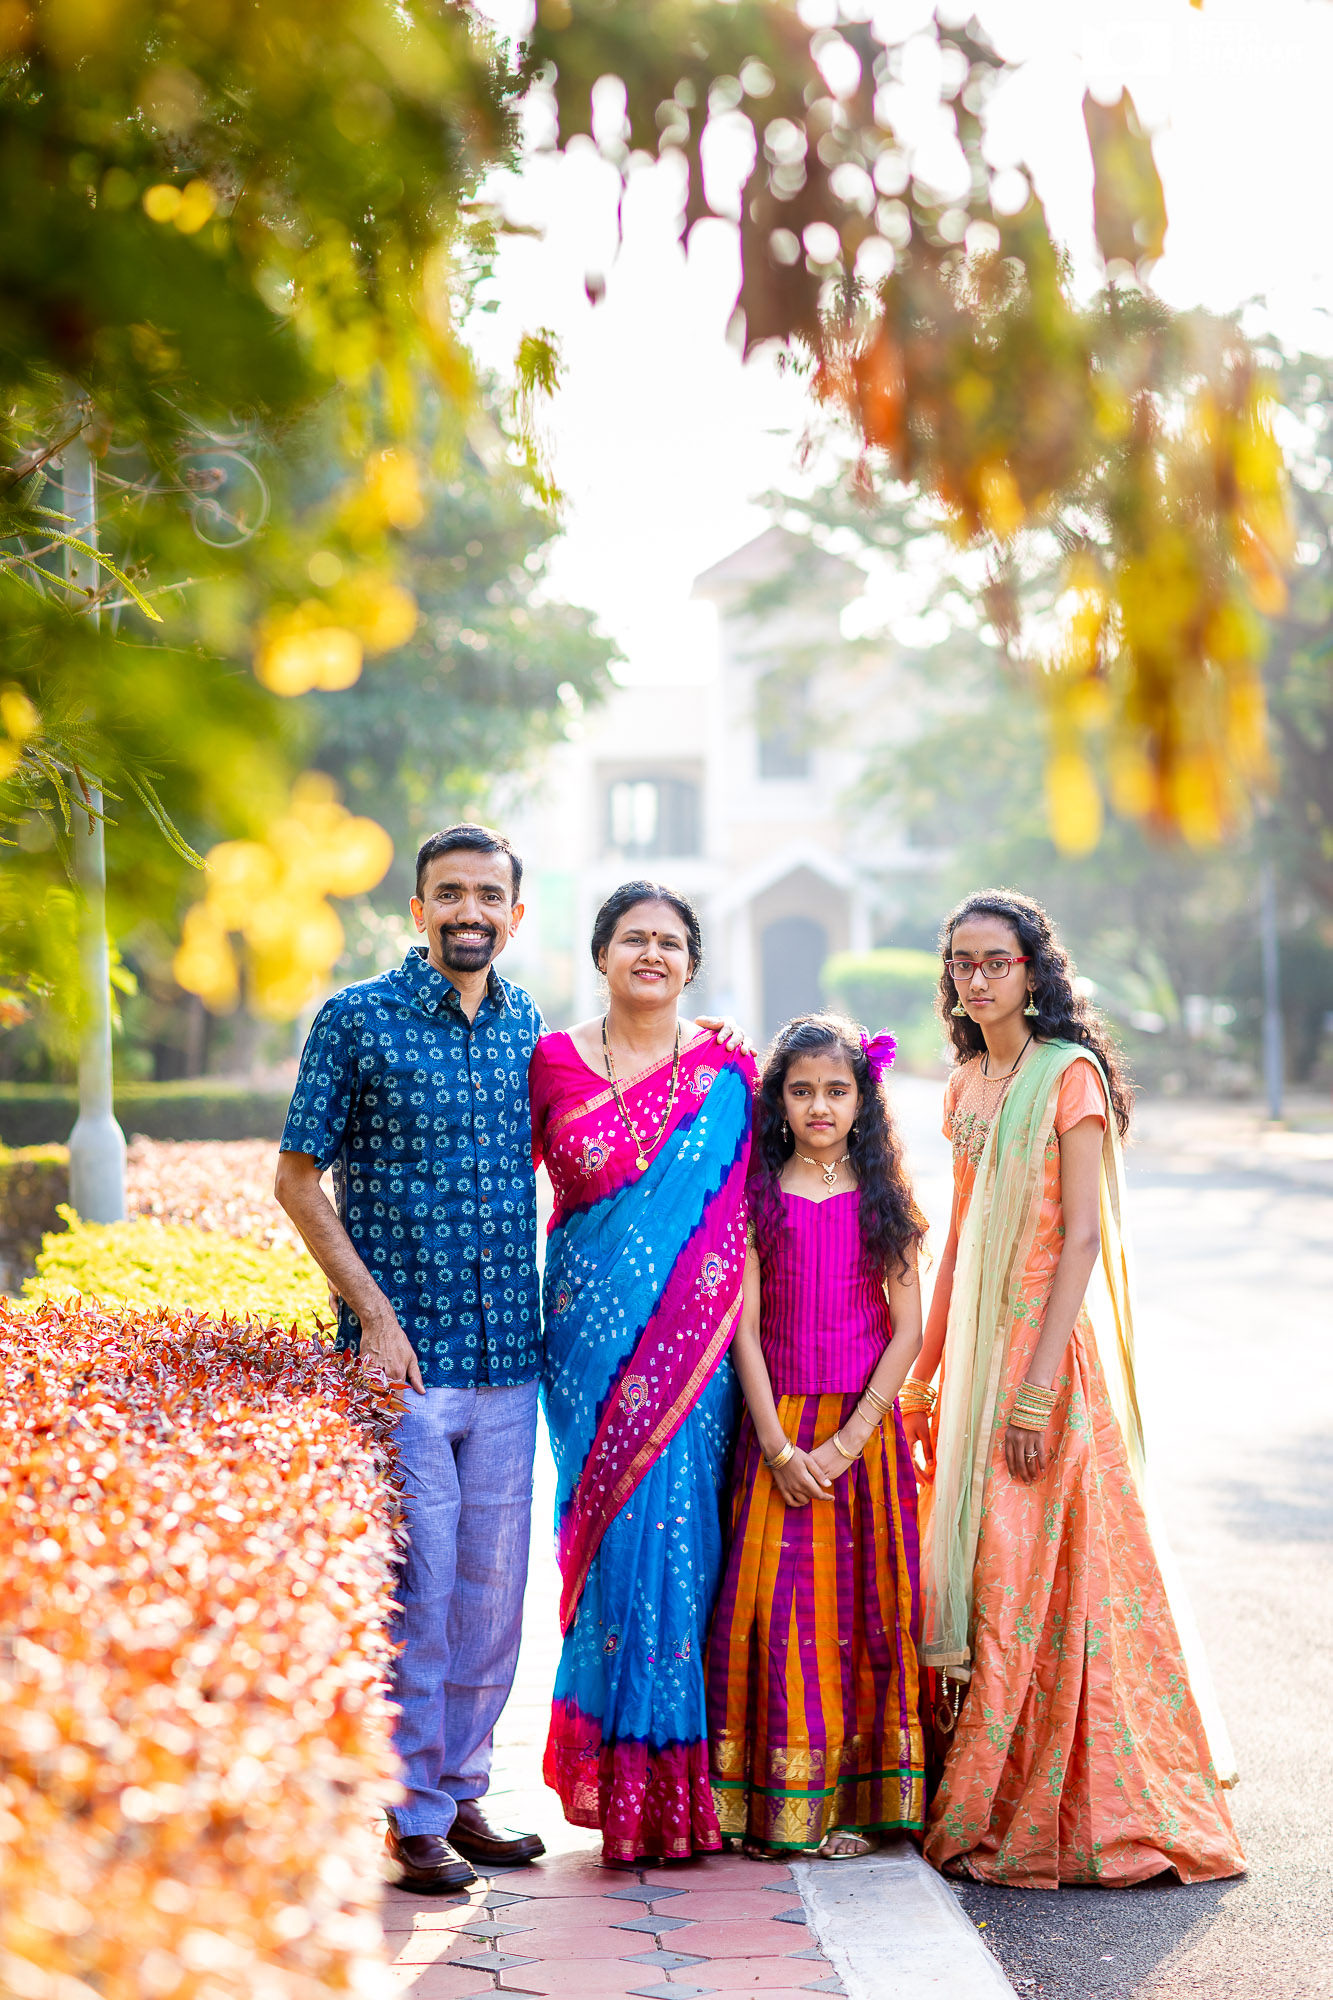 Neeta-Shankar-Photography-Family-Portraits